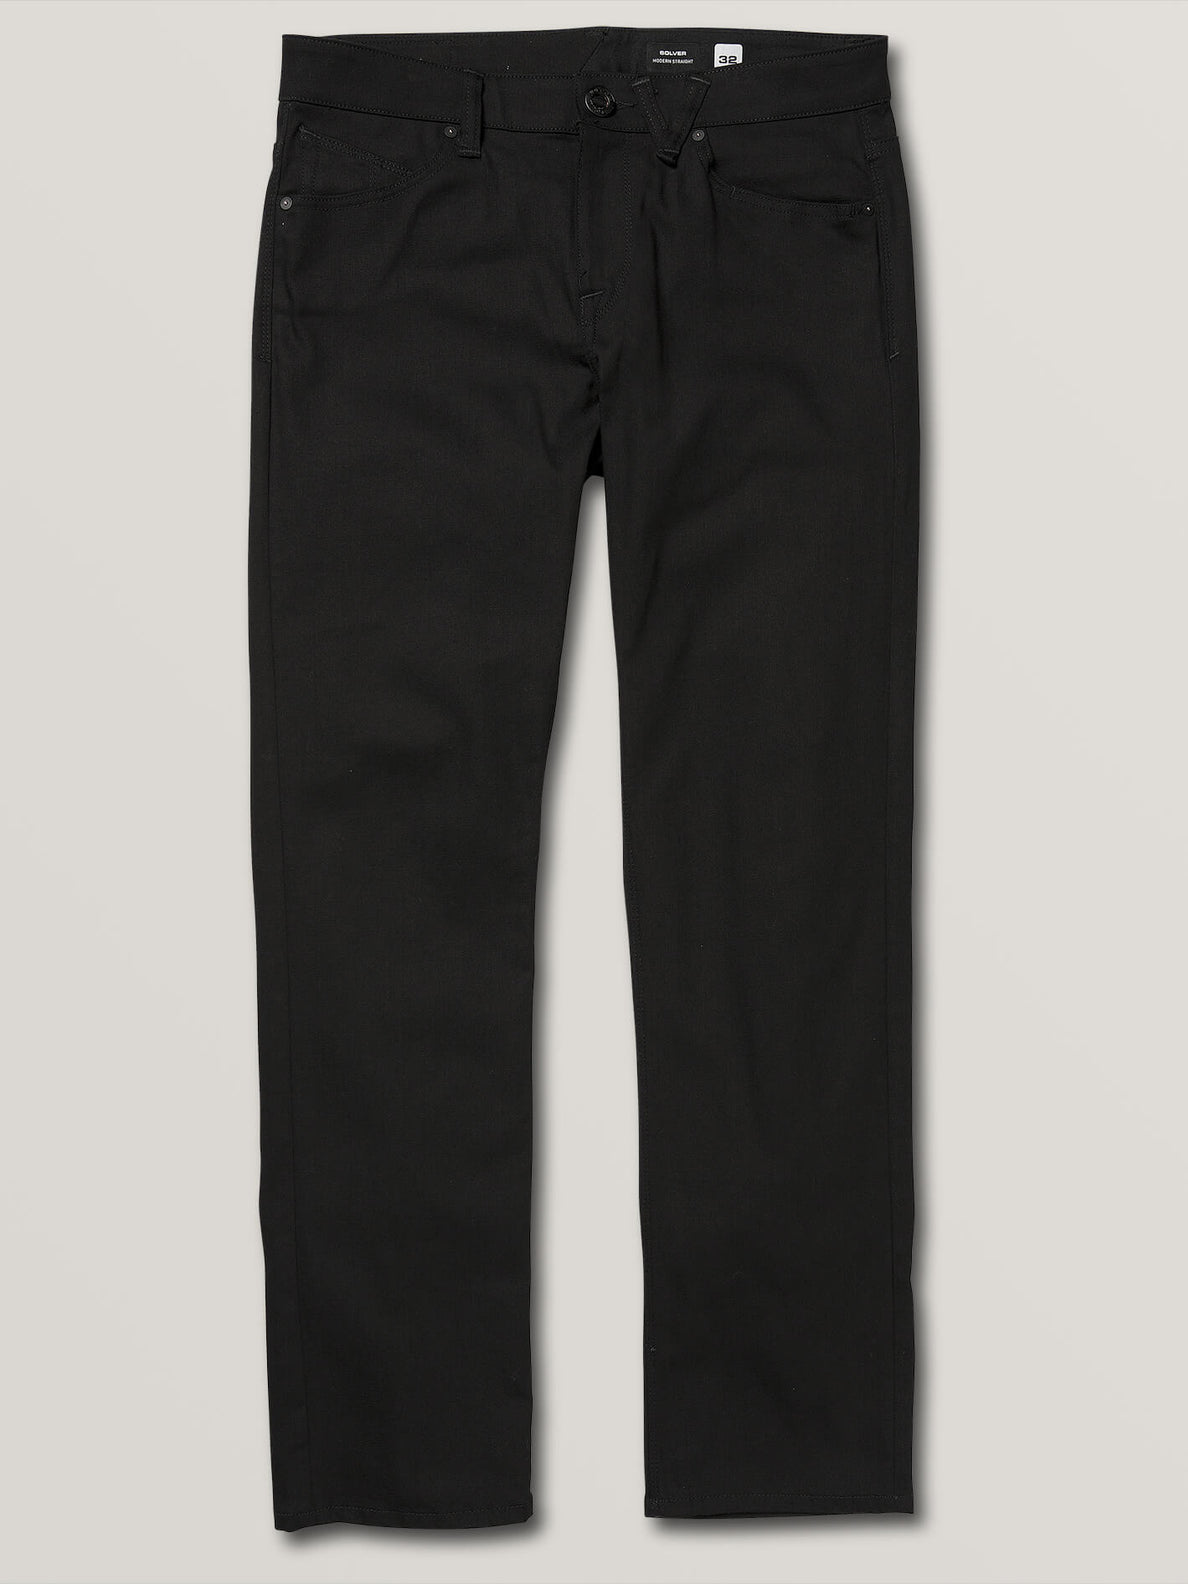 Solver Modern Fit Jeans - Black On Black